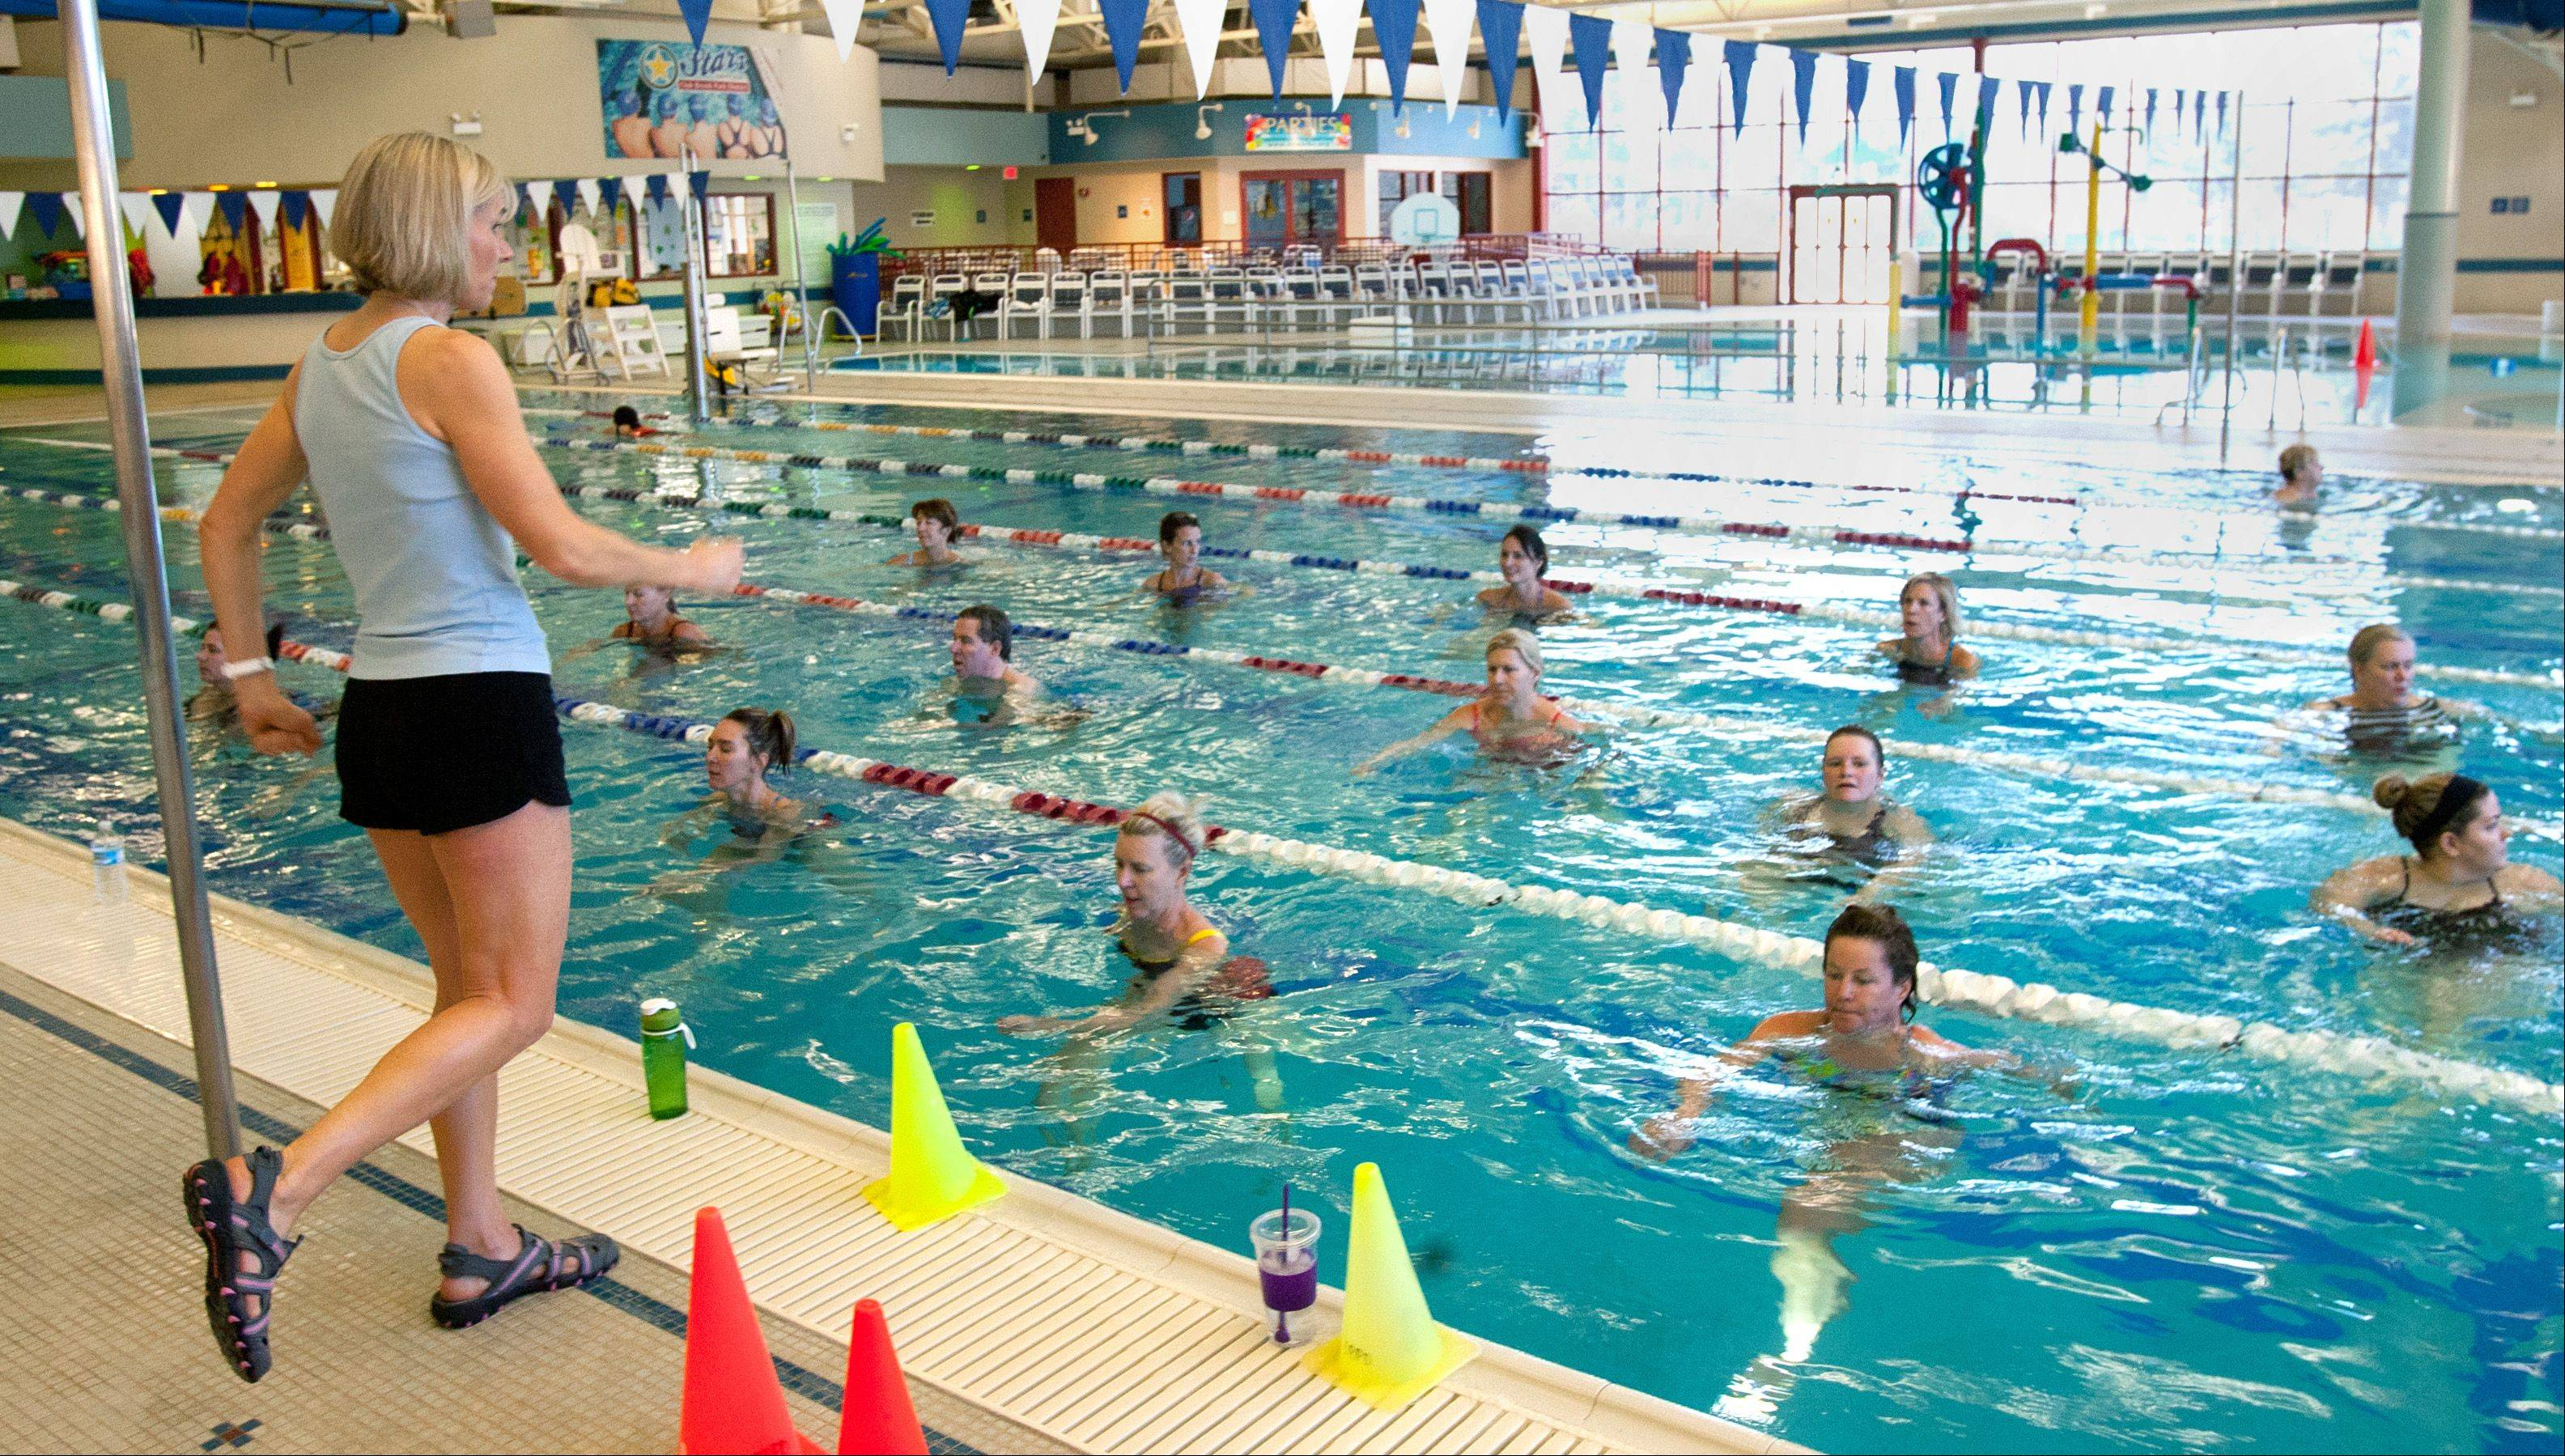 Jennifer Conroyd, the only certified water running coach in the U.S., teaches exercise classes at the Oak Brook Park District Family Recreation Center. Deep water running offers all the benefits of running on land, plus more, she says.